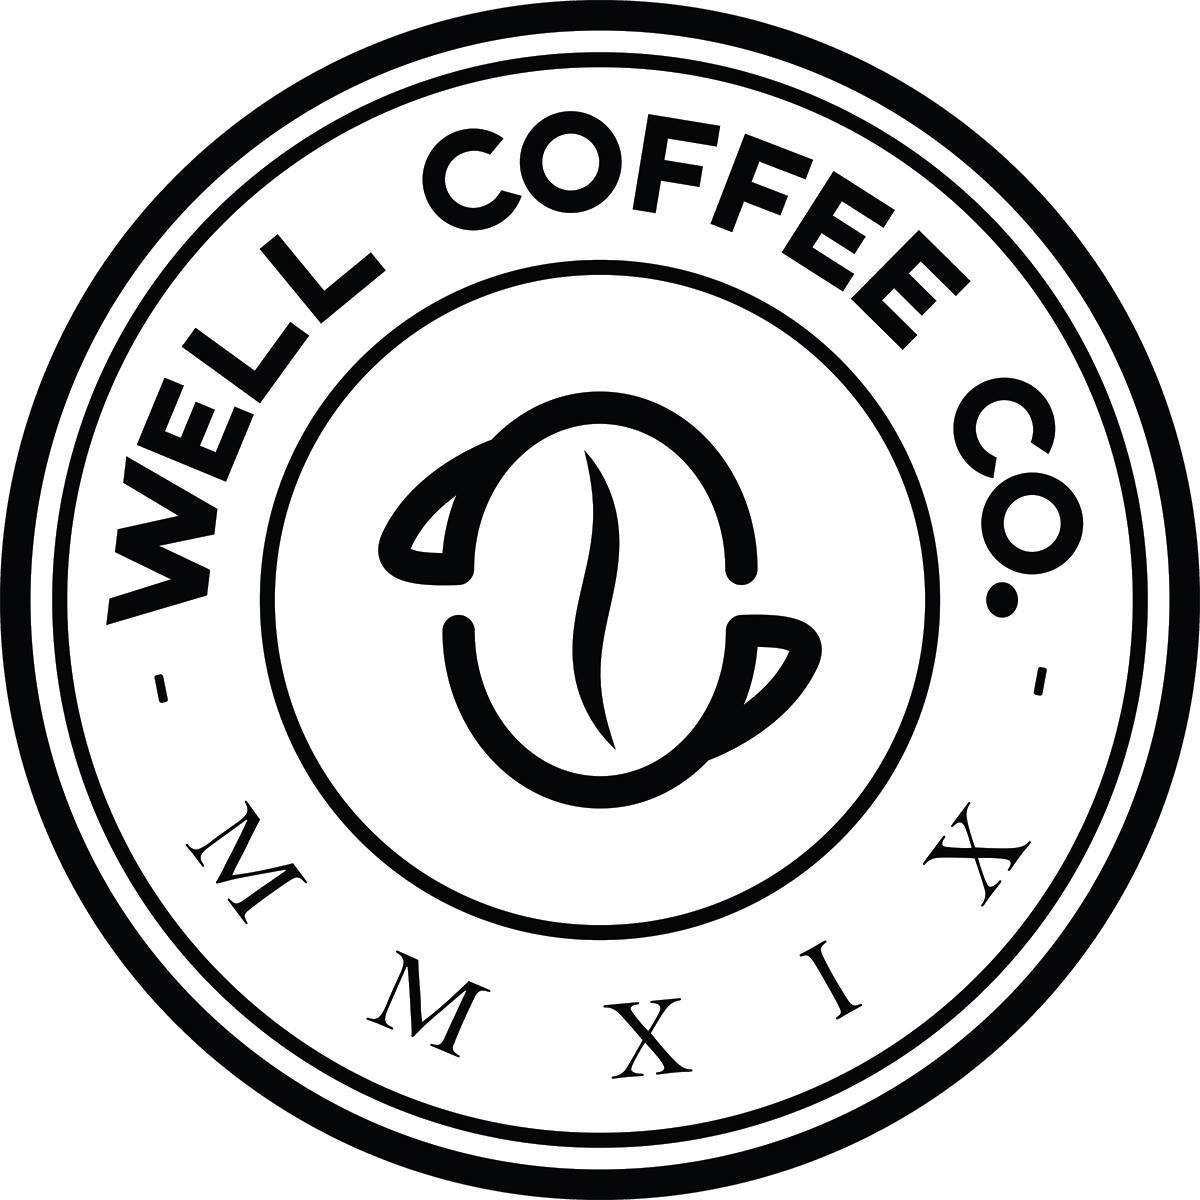 Well Coffee Co.